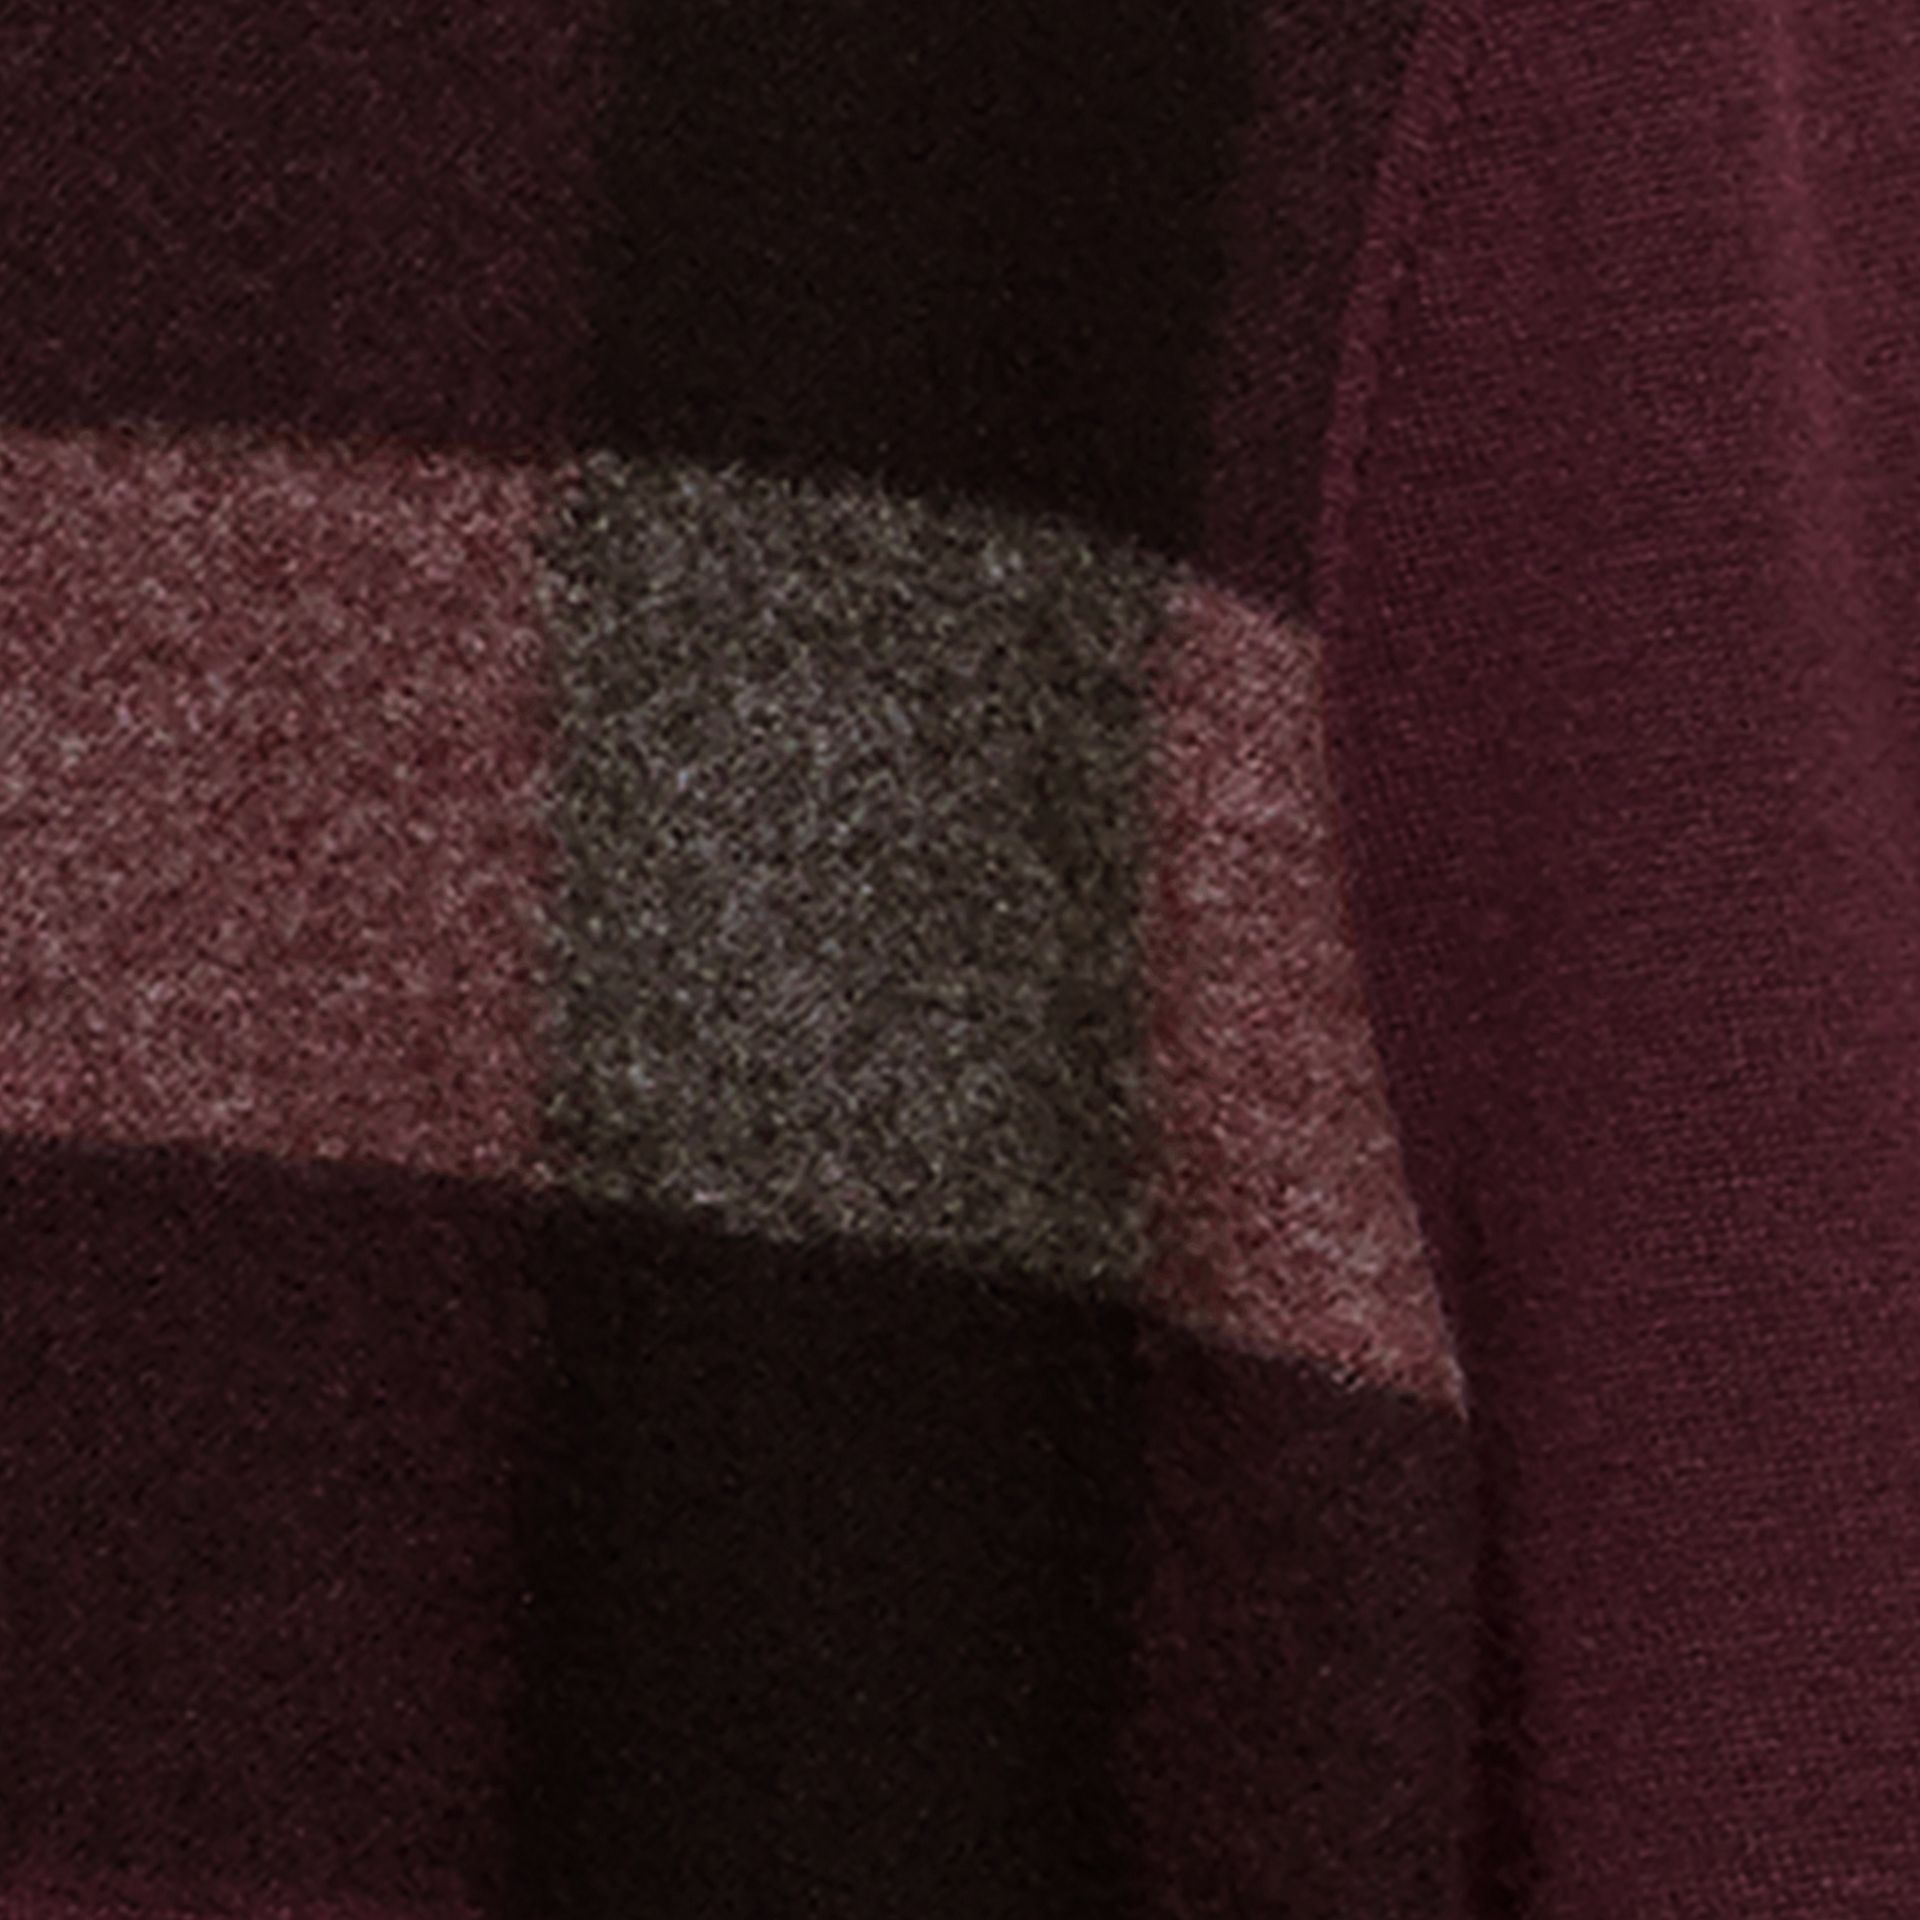 Burgundy red Graphic Check Cashmere Cotton Sweater Burgundy Red - gallery image 2